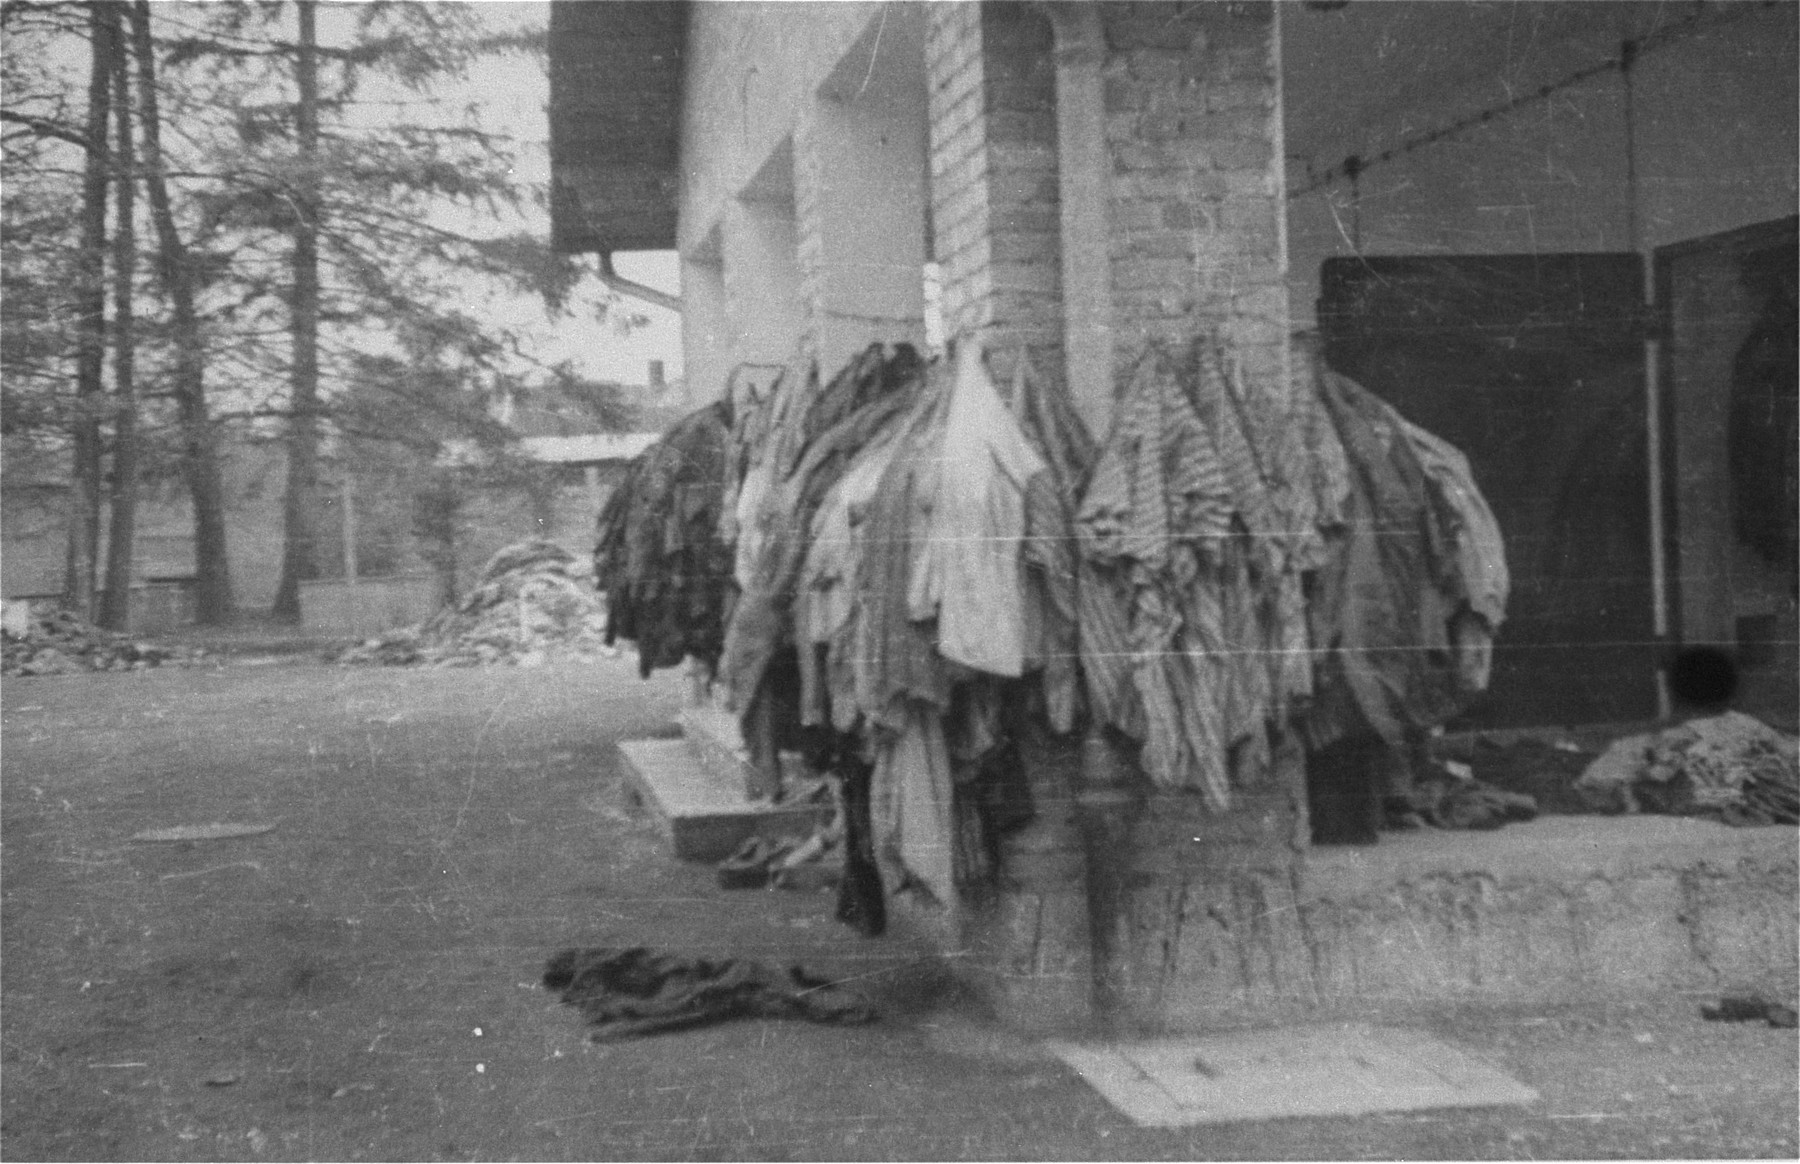 Prisoners' uniforms hung up outside a camp building.